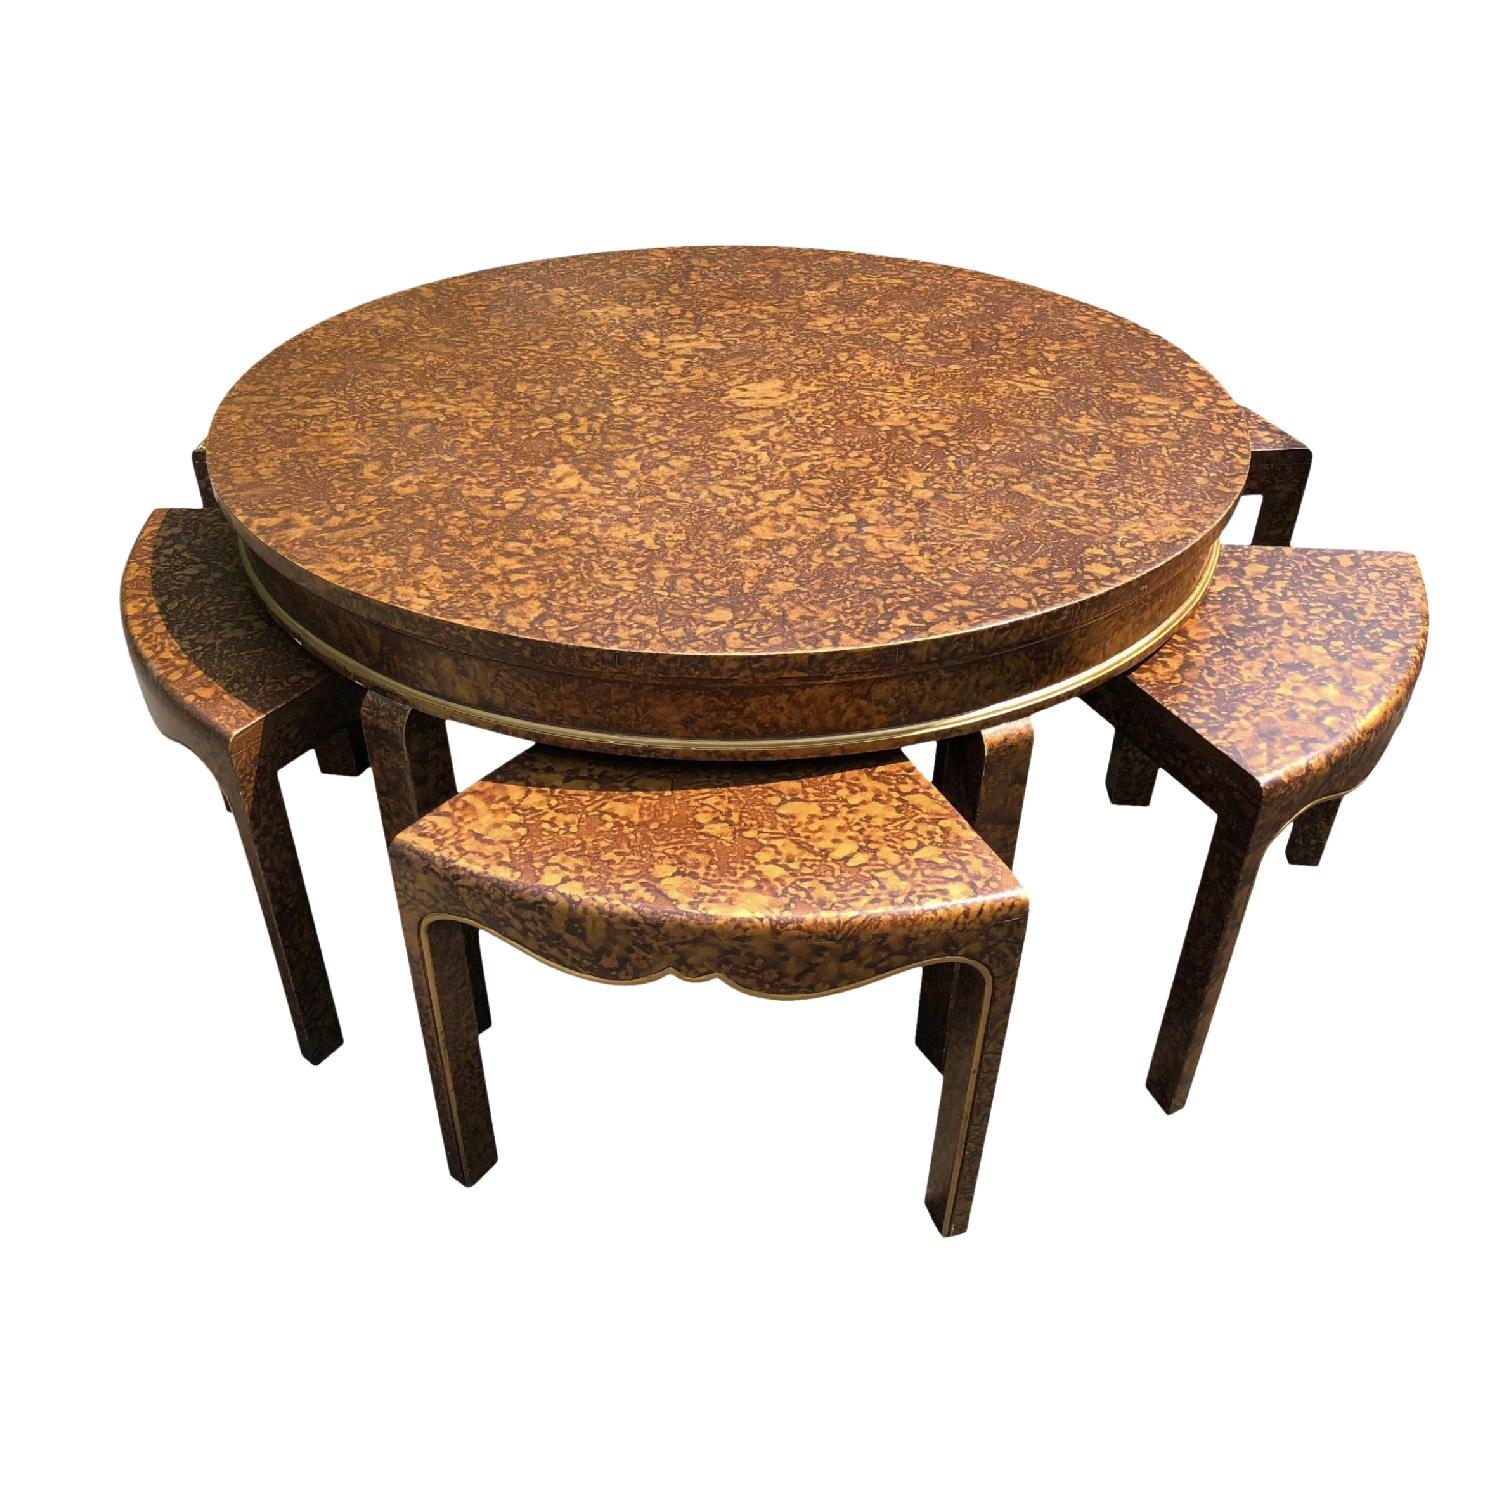 Chinoiserie Chic Tea/Opium Table w/ 6 Seats - image-0